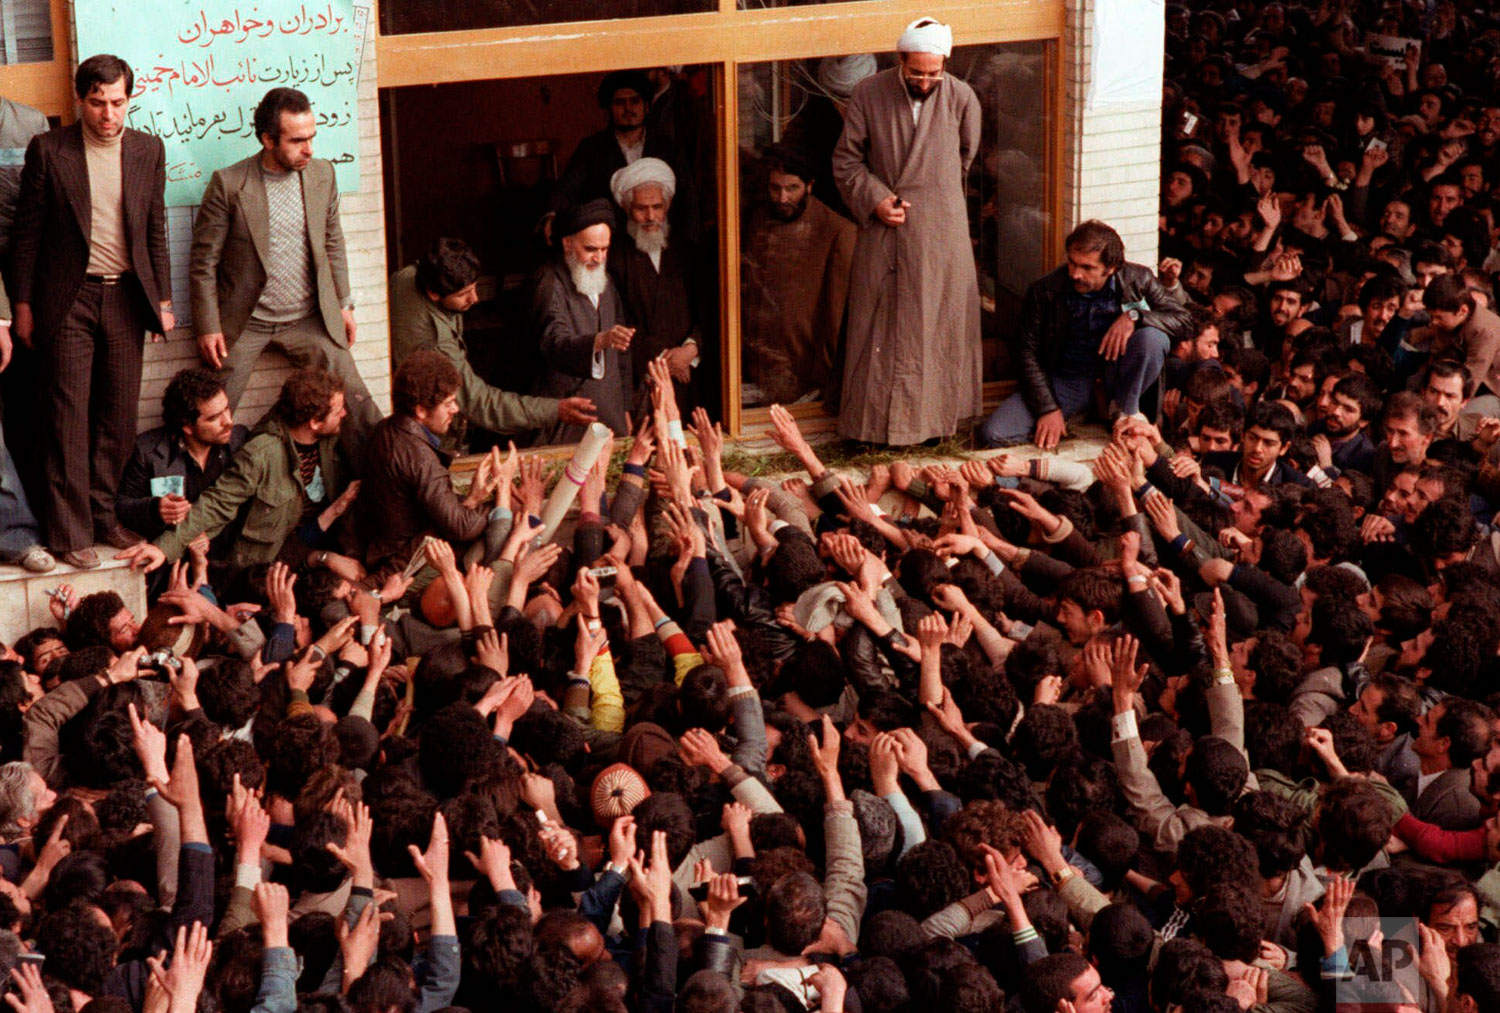 In this Feb. 2, 1979 photo, Ayatollah Ruhollah Khomeini, center, is greeted by supporters in Tehran, Iran. (AP Photo)